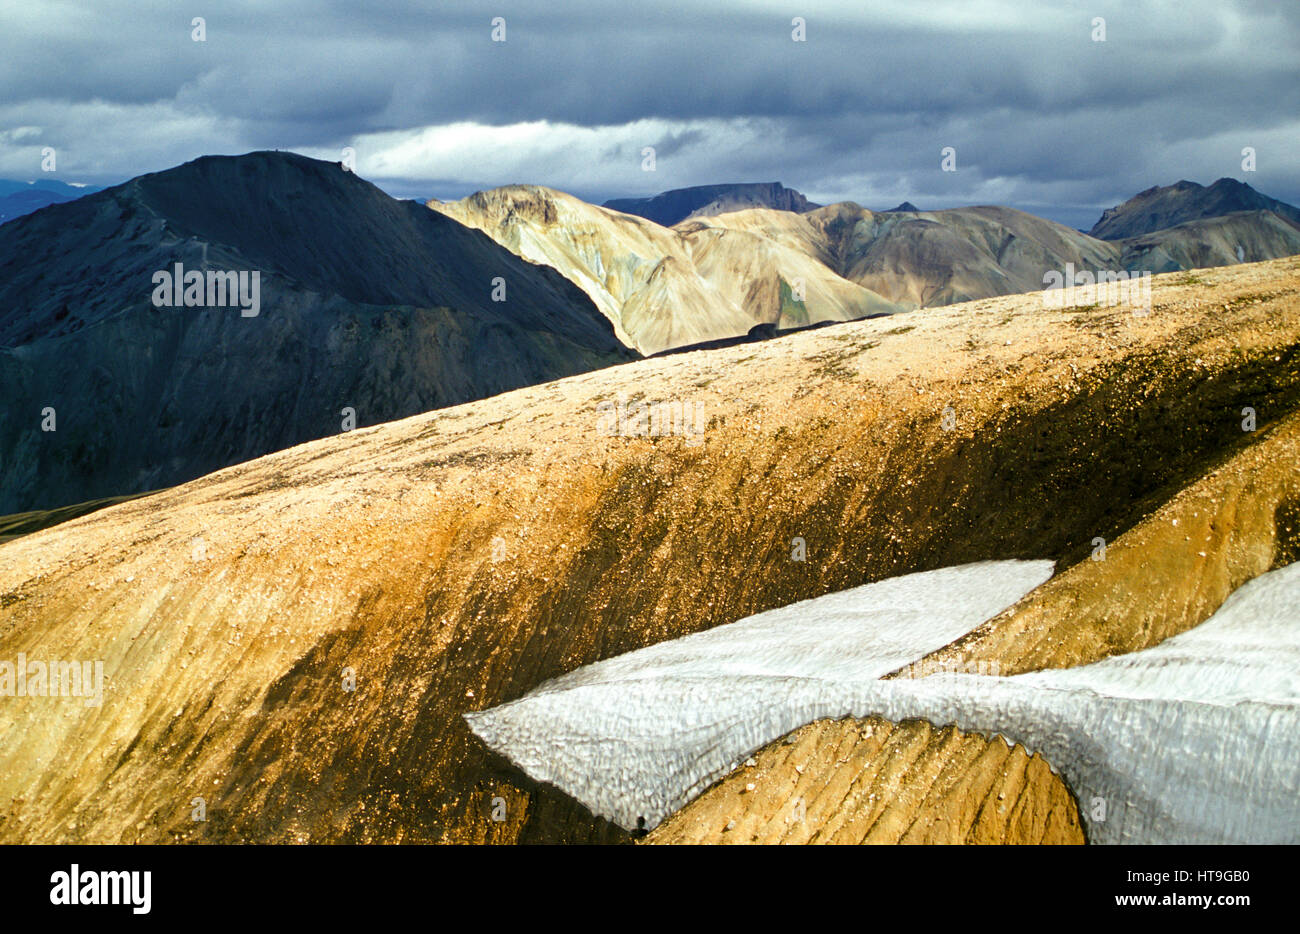 Amazing unreal volcanic mountainous landscape in Iceland in beautiful light - Stock Image